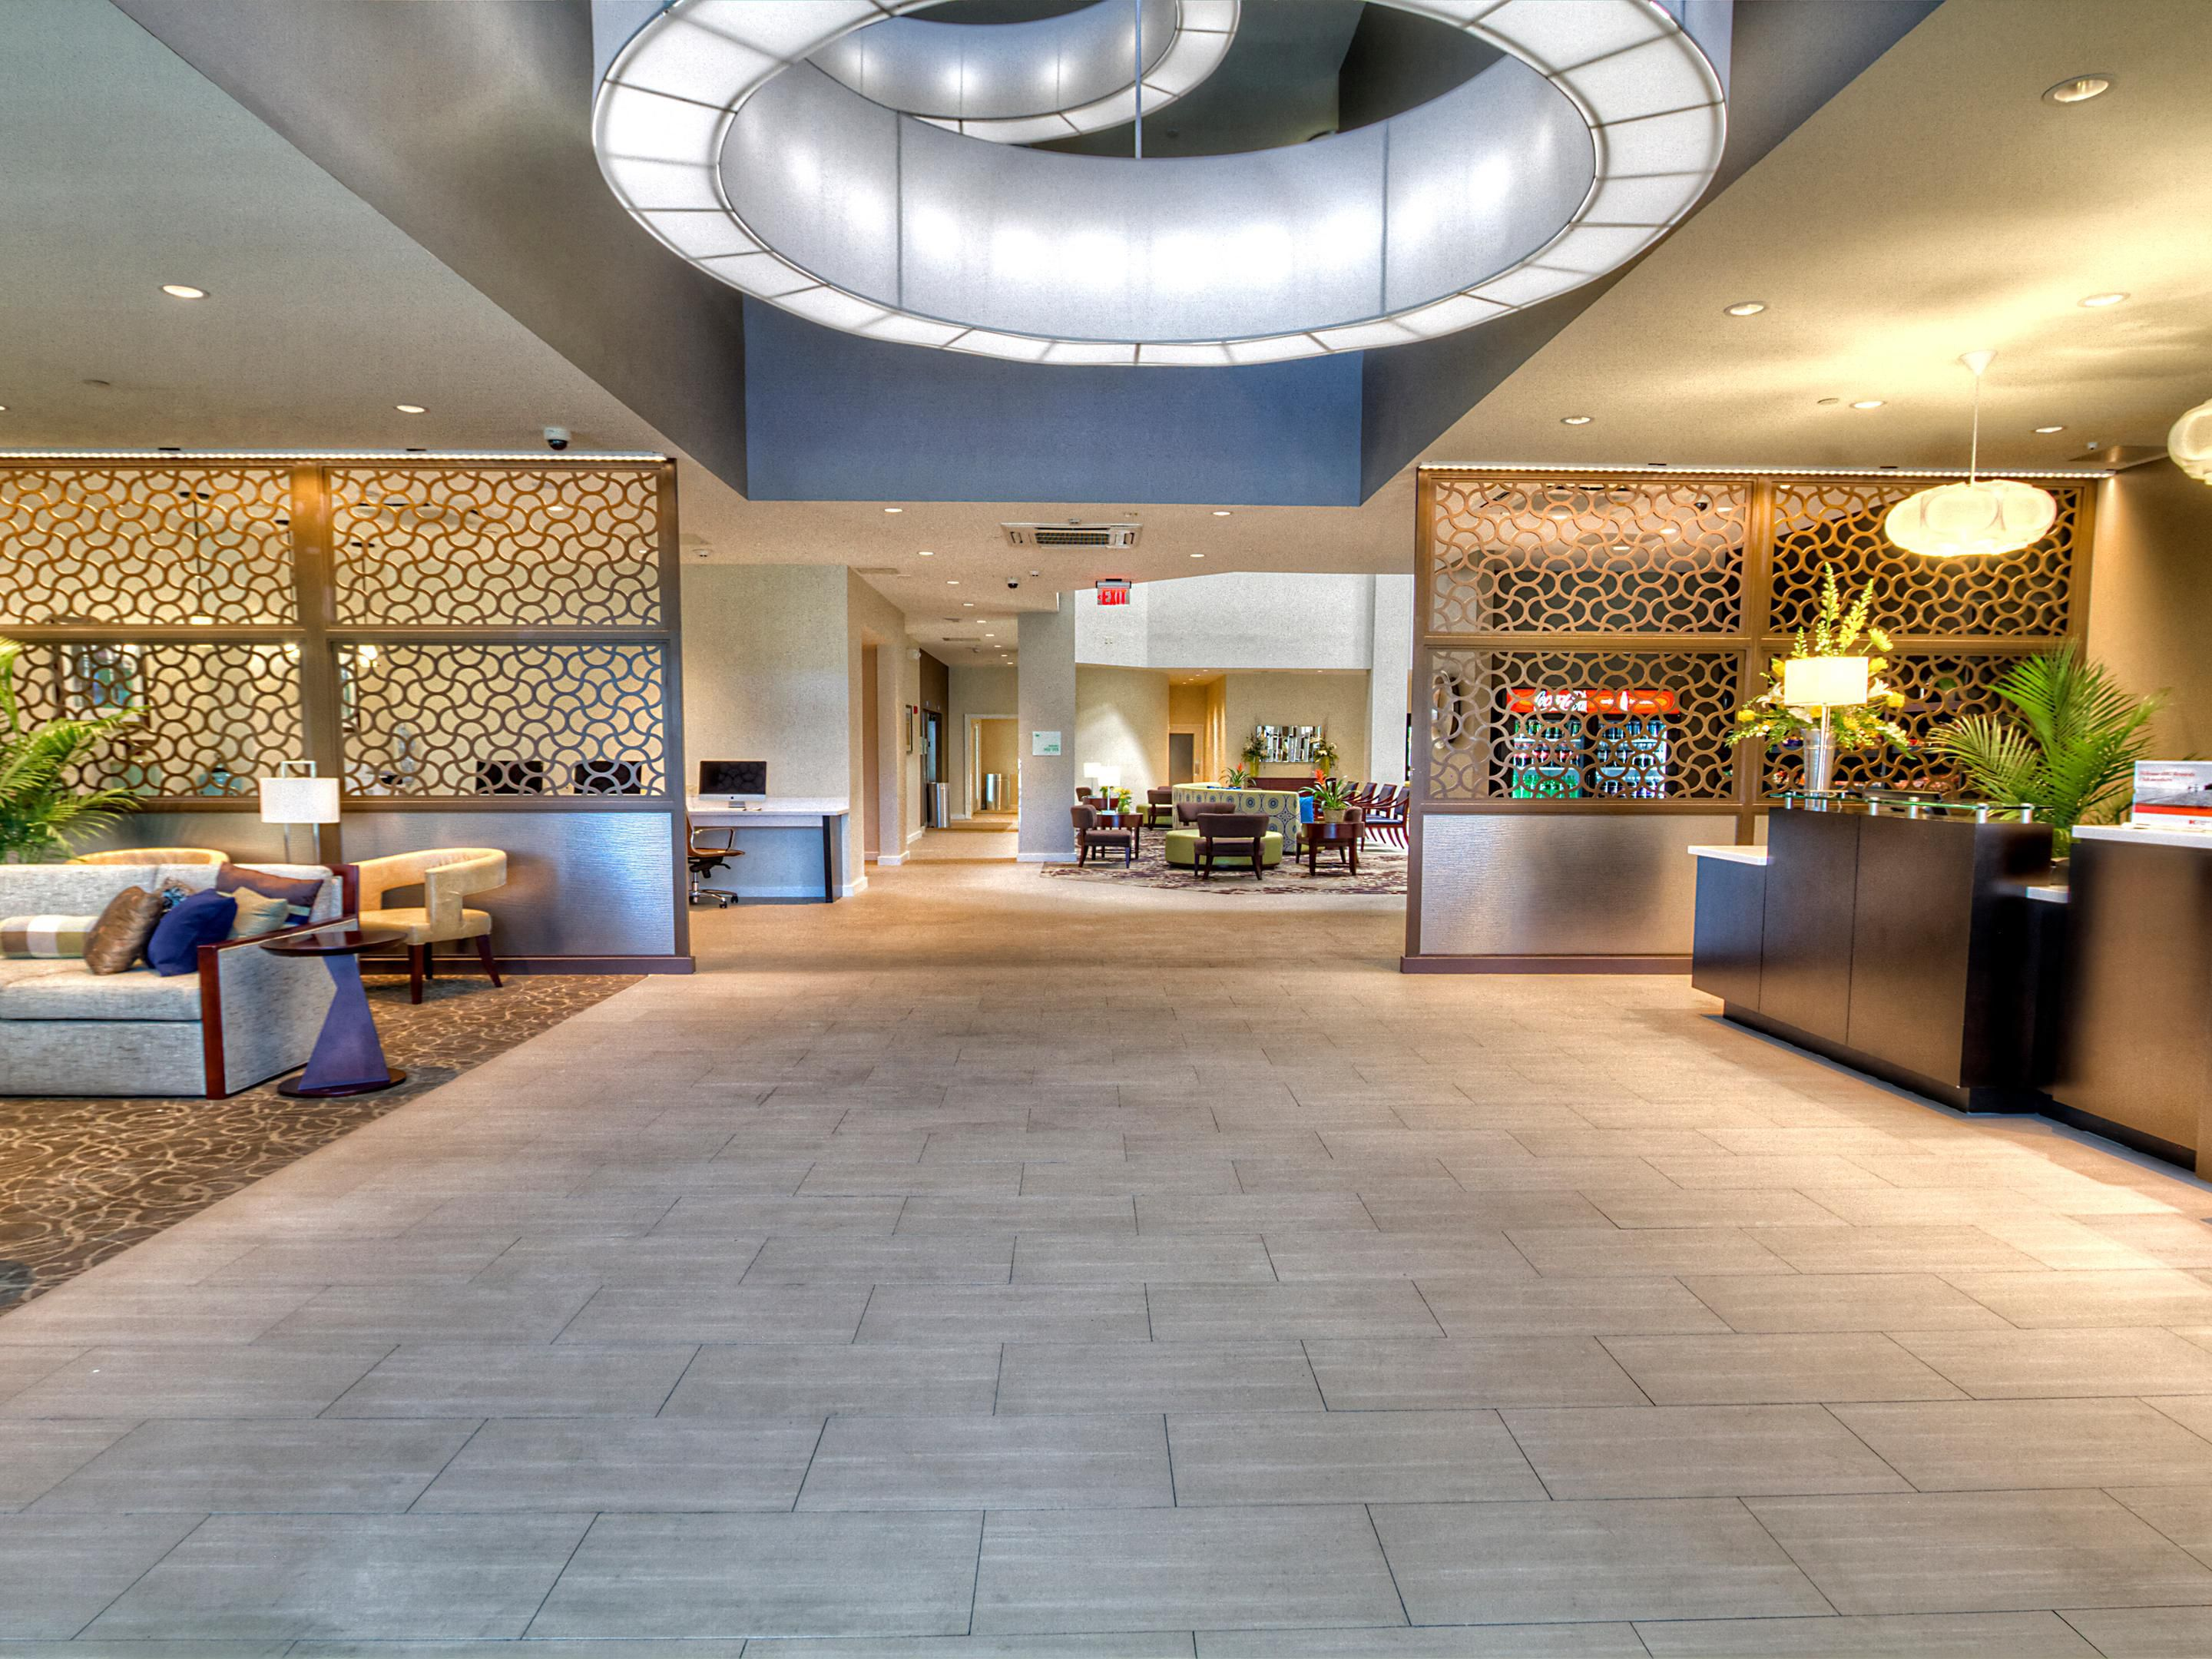 Welcome to the Holiday Inn & Suites Tupelo North lobby.